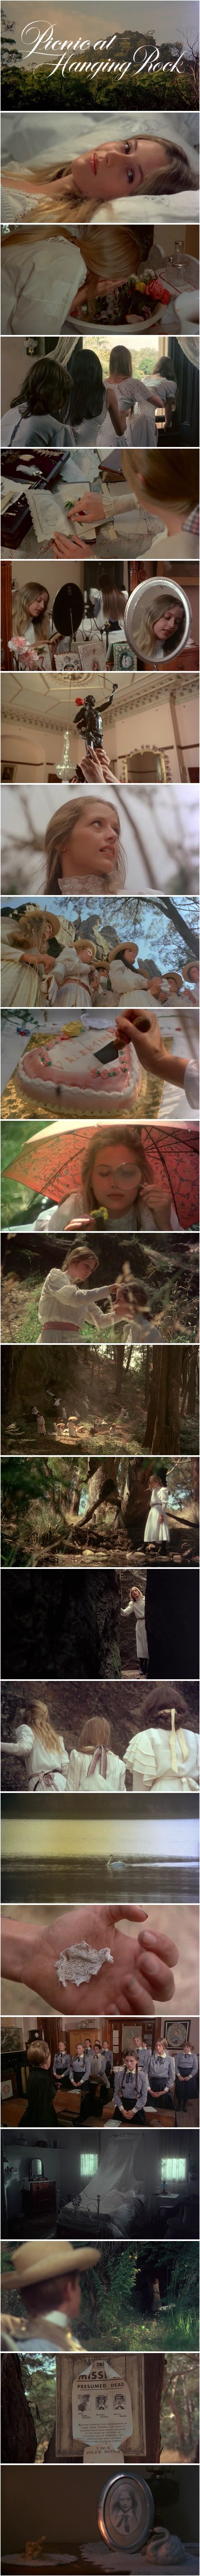 Peter Weir's Picnic At Hanging Rock (1975)